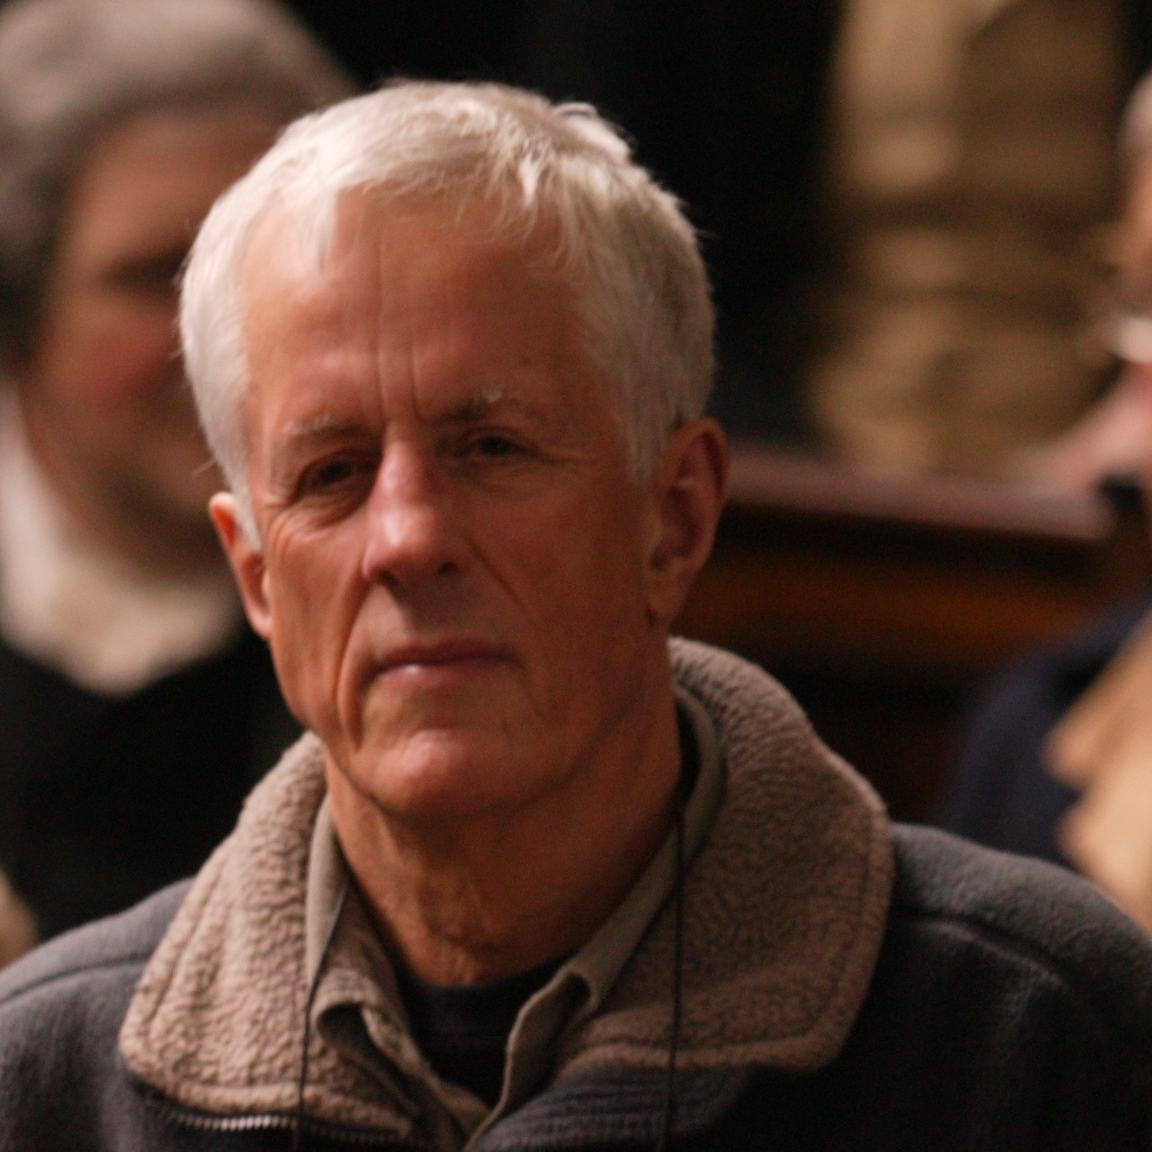 Michael Apted, the director of the Up series, also directed the James Bond film The World Is Not Enough.